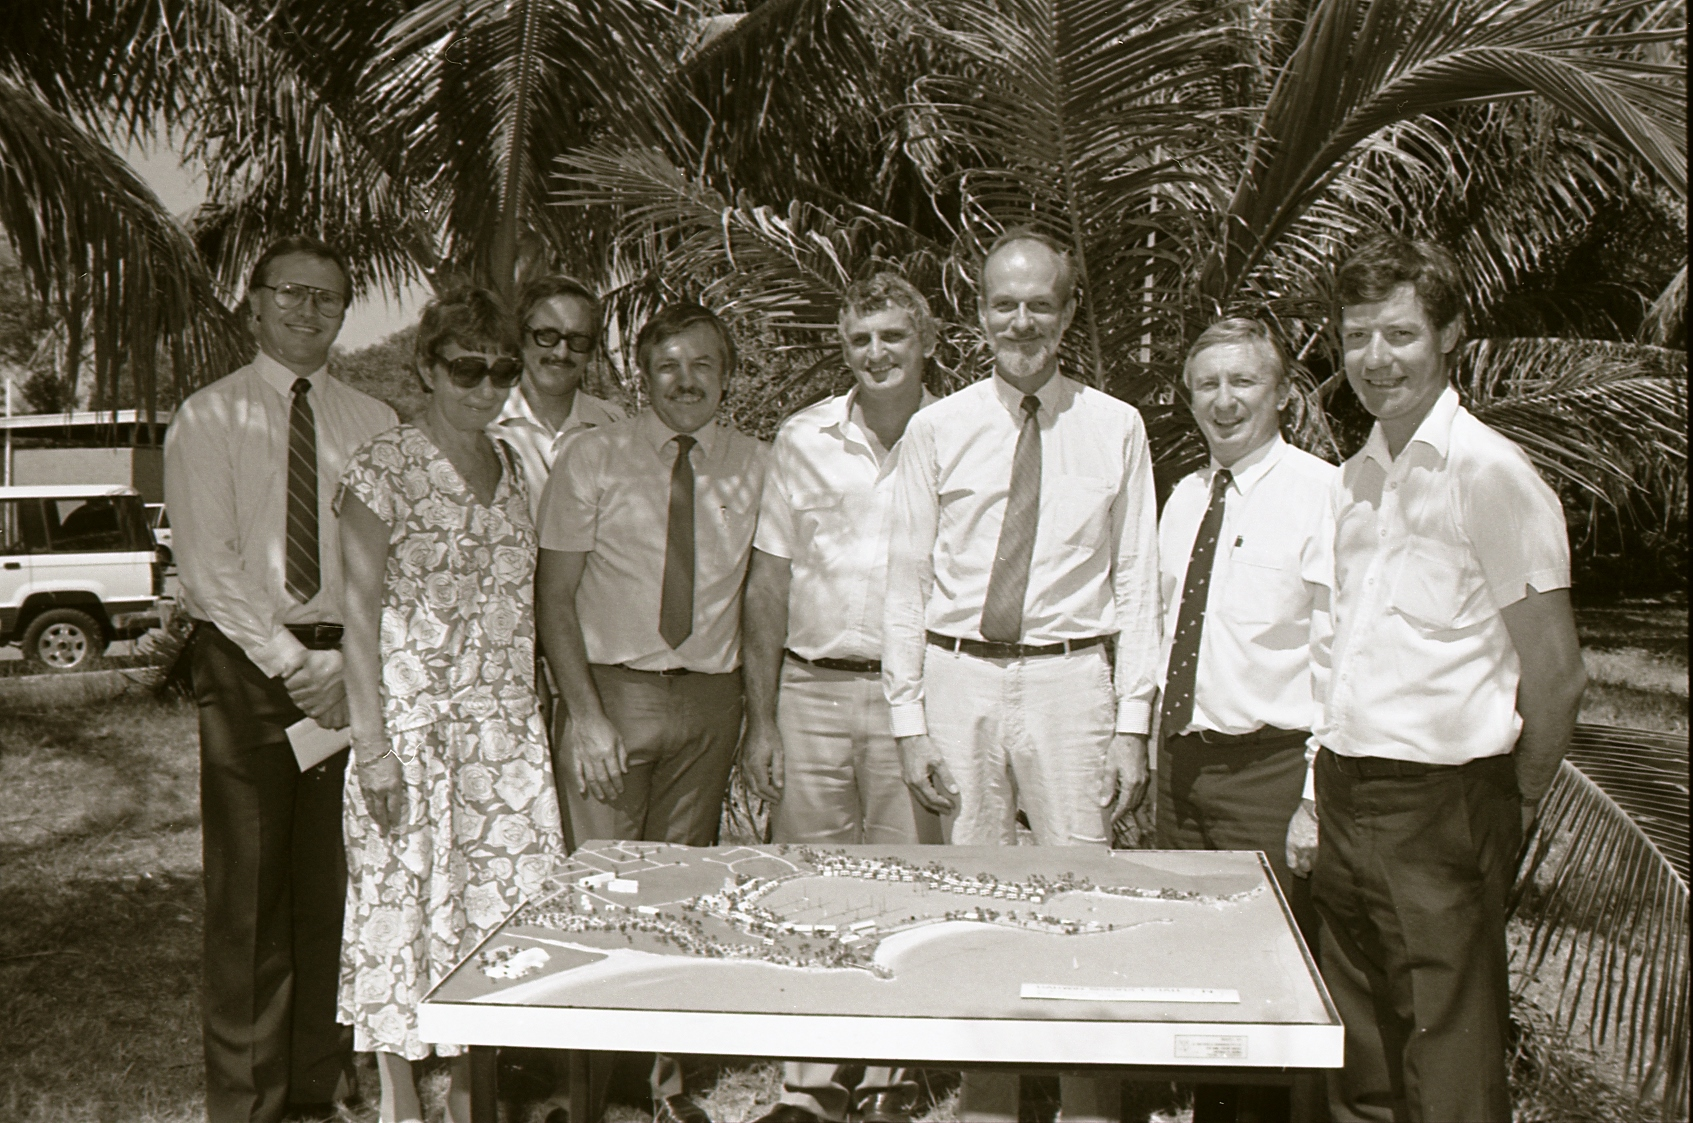 [Kahlin Marine Estate (Cullen Bay) signing, 26 May 1988] Image courtesy of Northern Territory Archives Service, Department of the Chief Minister, NTRS 3823 P1, BW 2726, Item 22